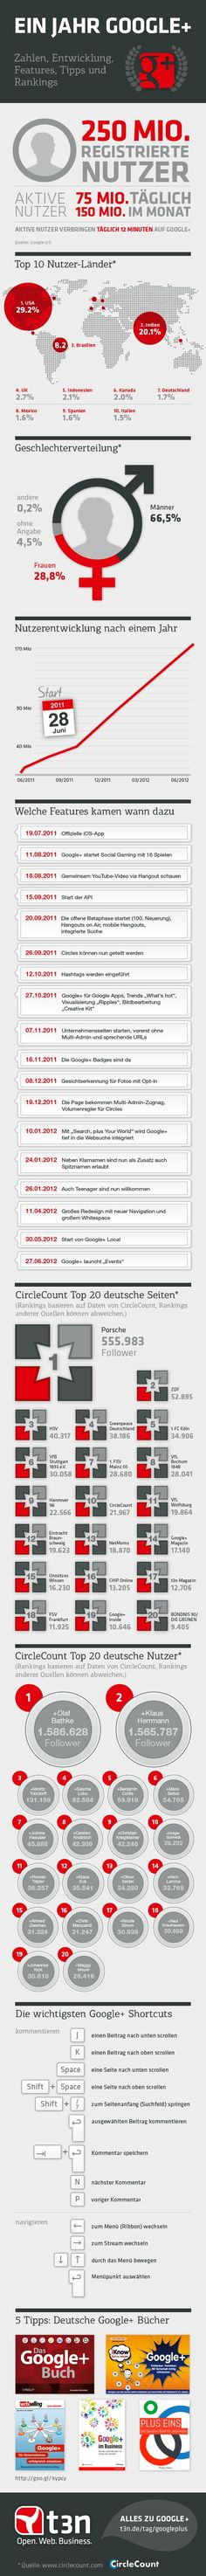 One Year Google+ Infographic / Ein Jahr Google+ Infografik